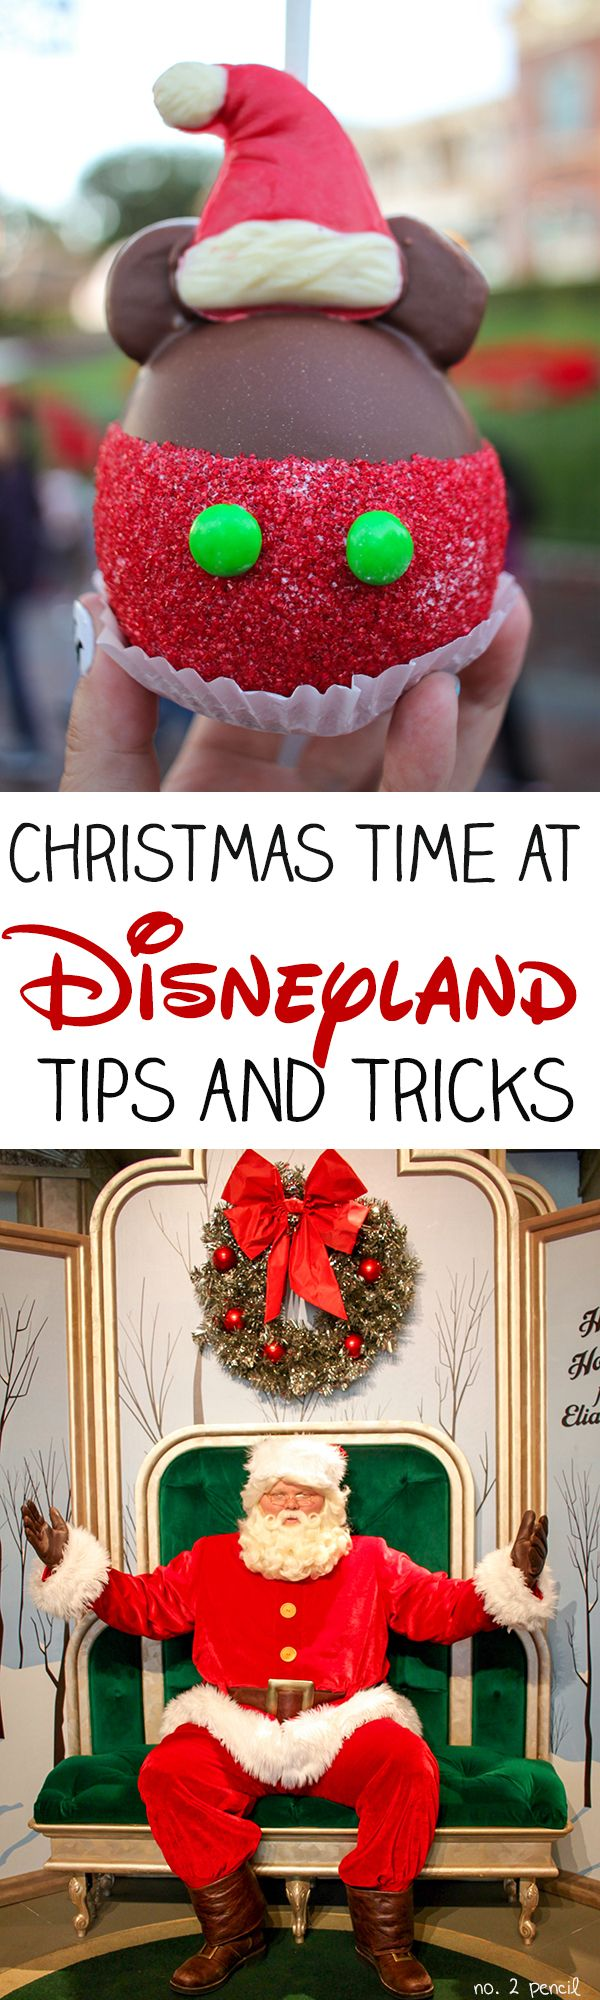 Disneyland at Christmas Tips and Tricks